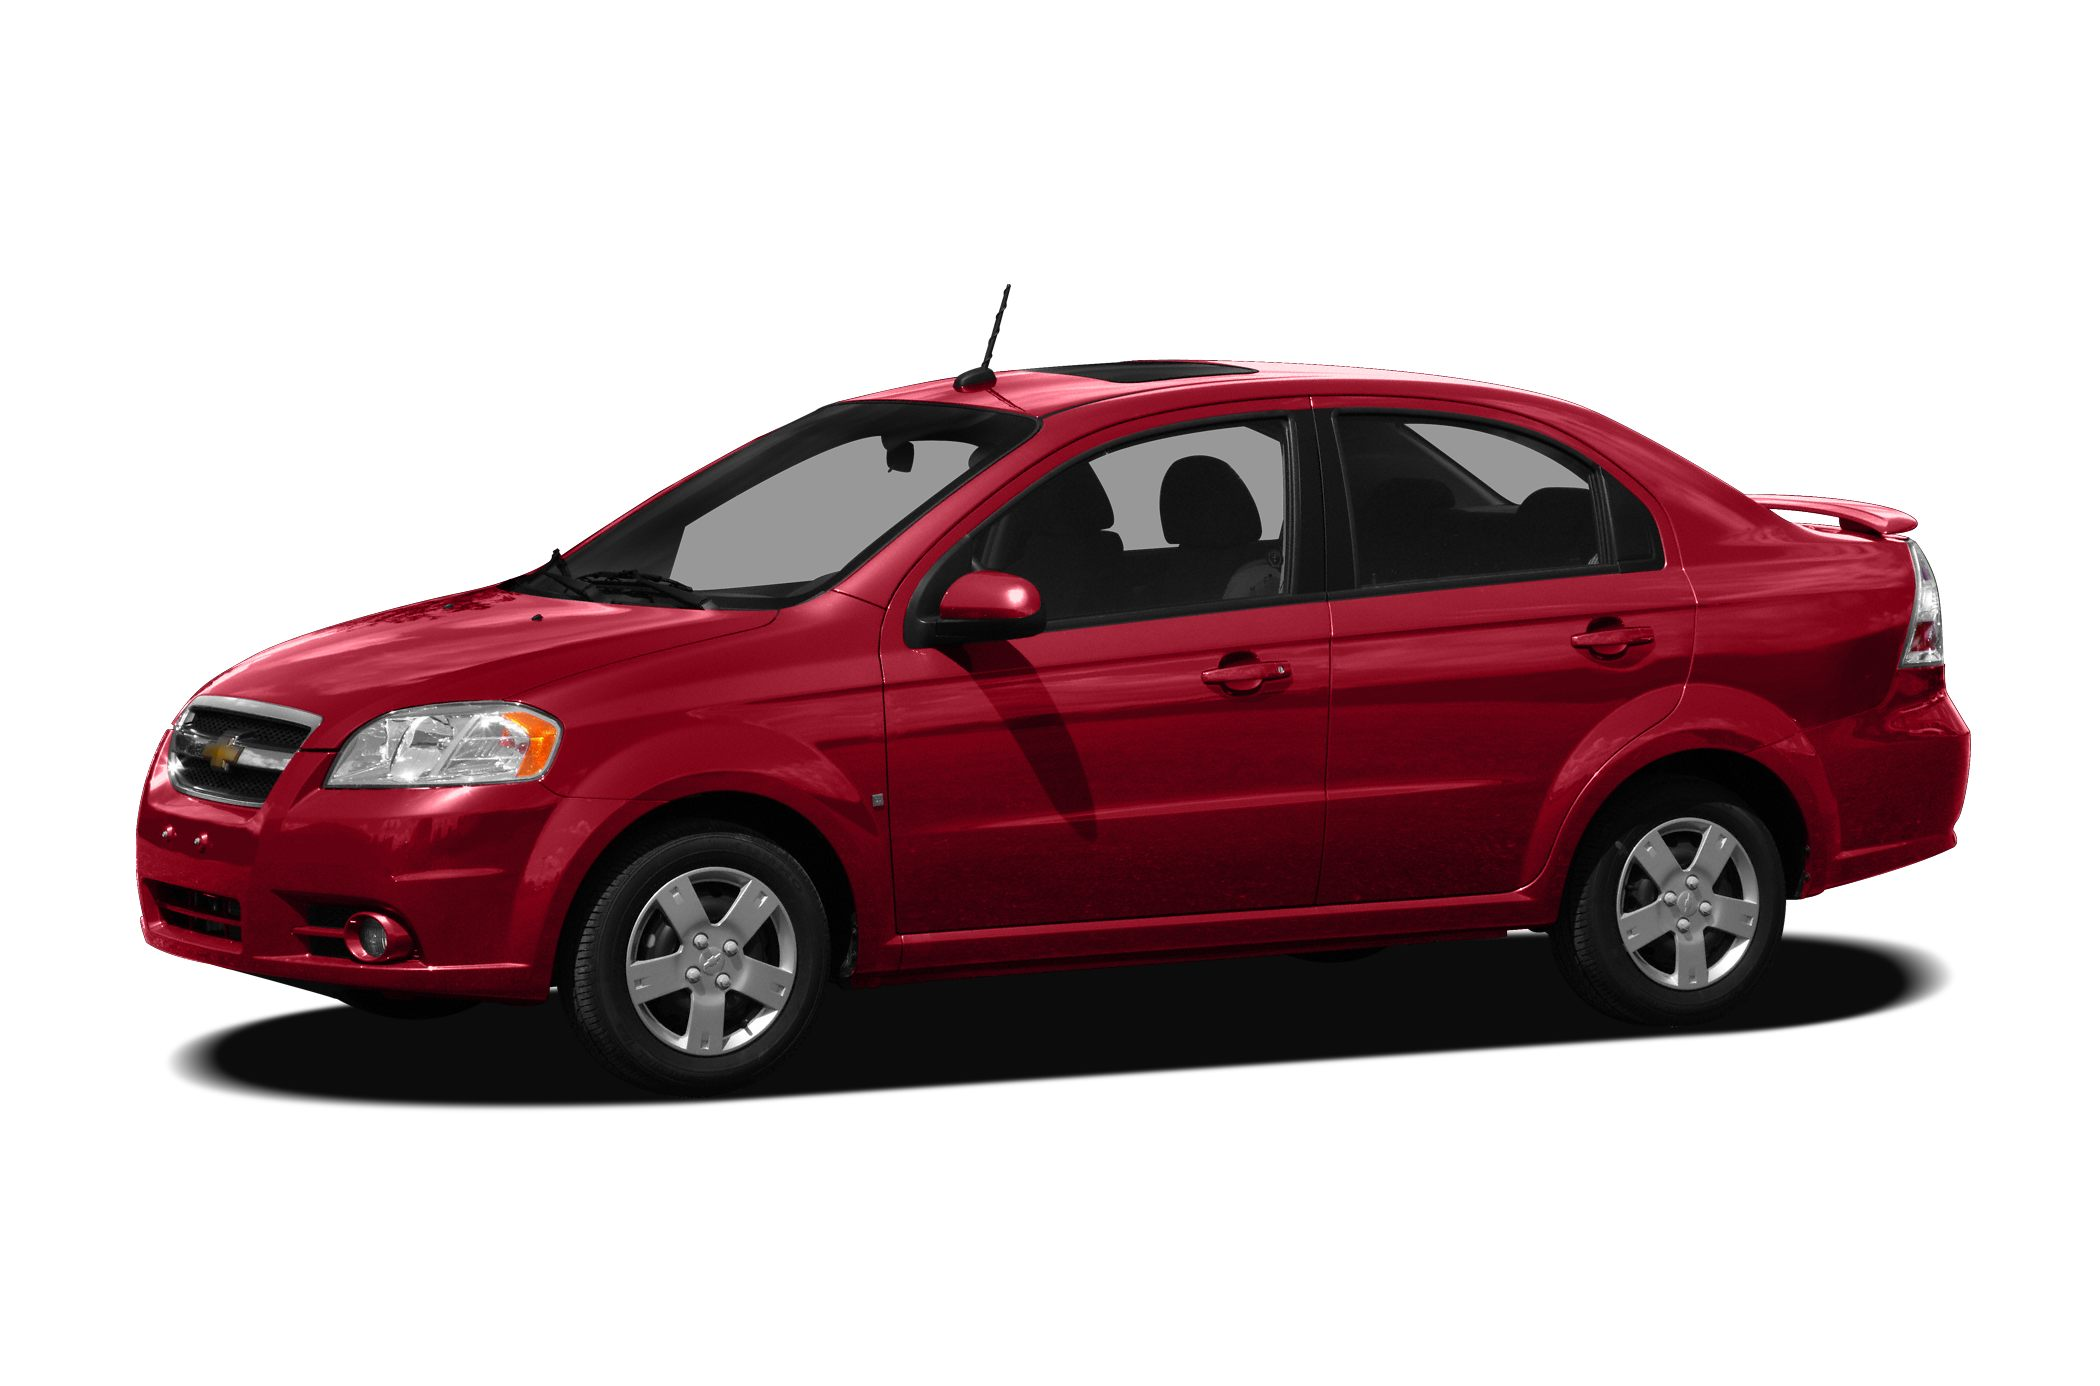 2010 Chevrolet Aveo LS Sedan for sale in Greer for $8,900 with 63,347 miles.